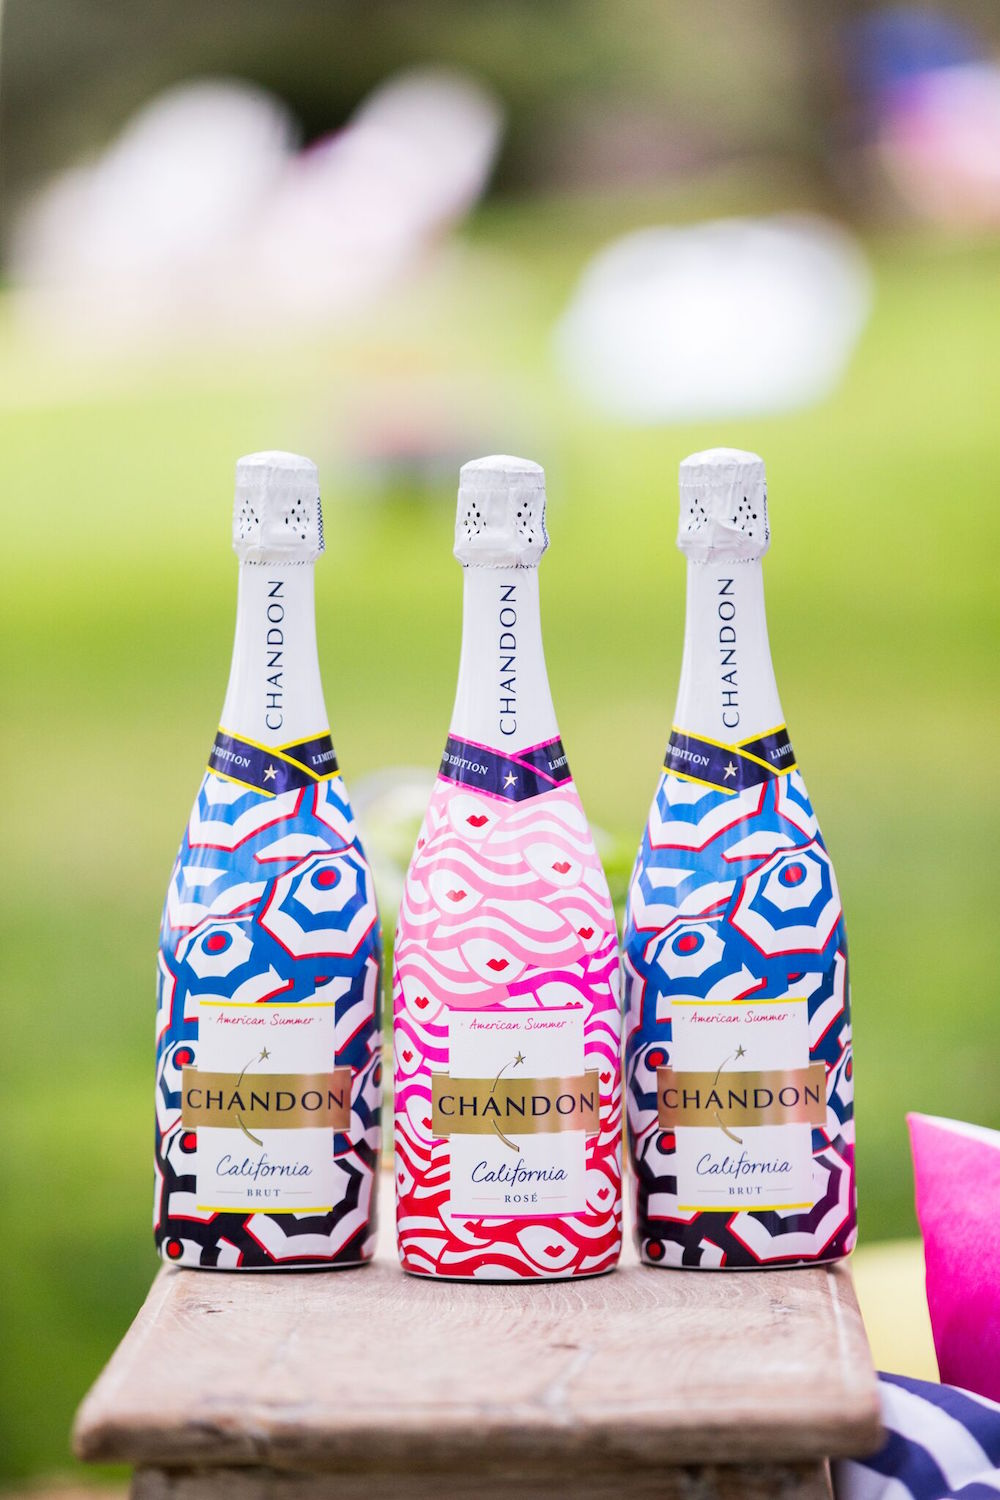 Chandon's limited edition Summer-themed bottles